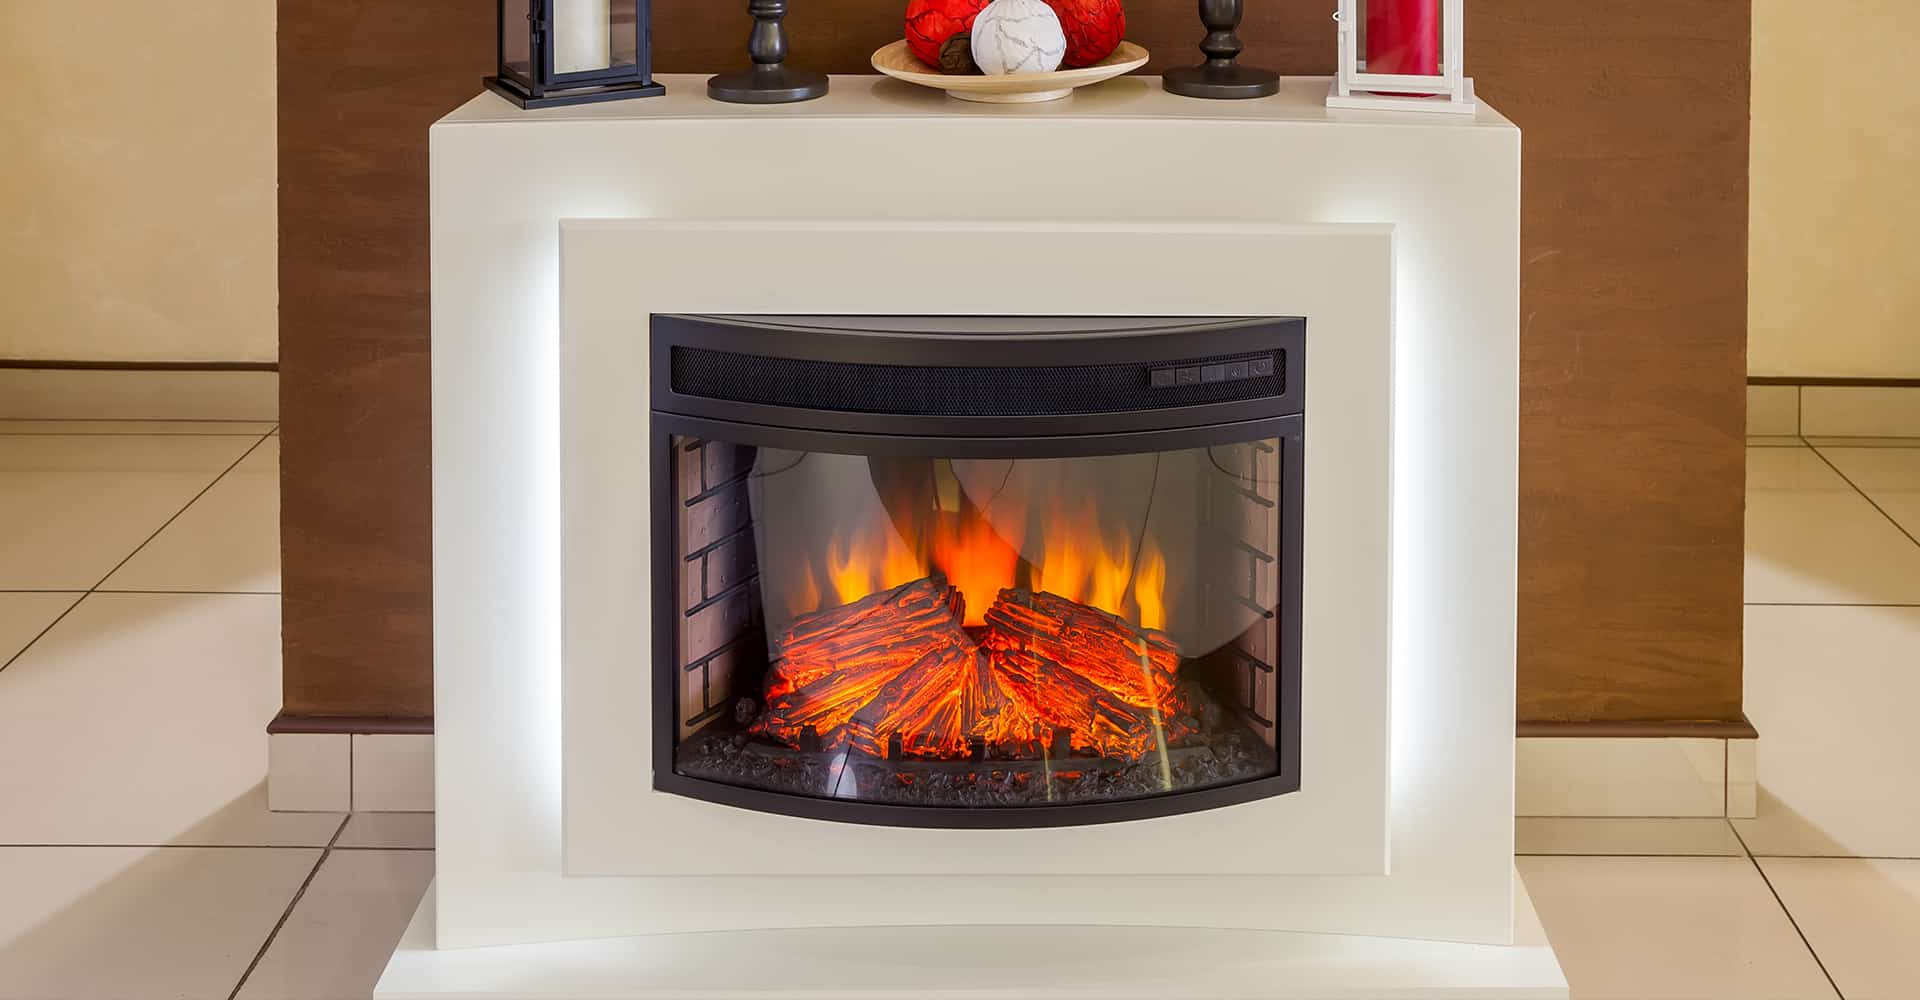 Best Electric Fires Log Burners Uk 2021 Review